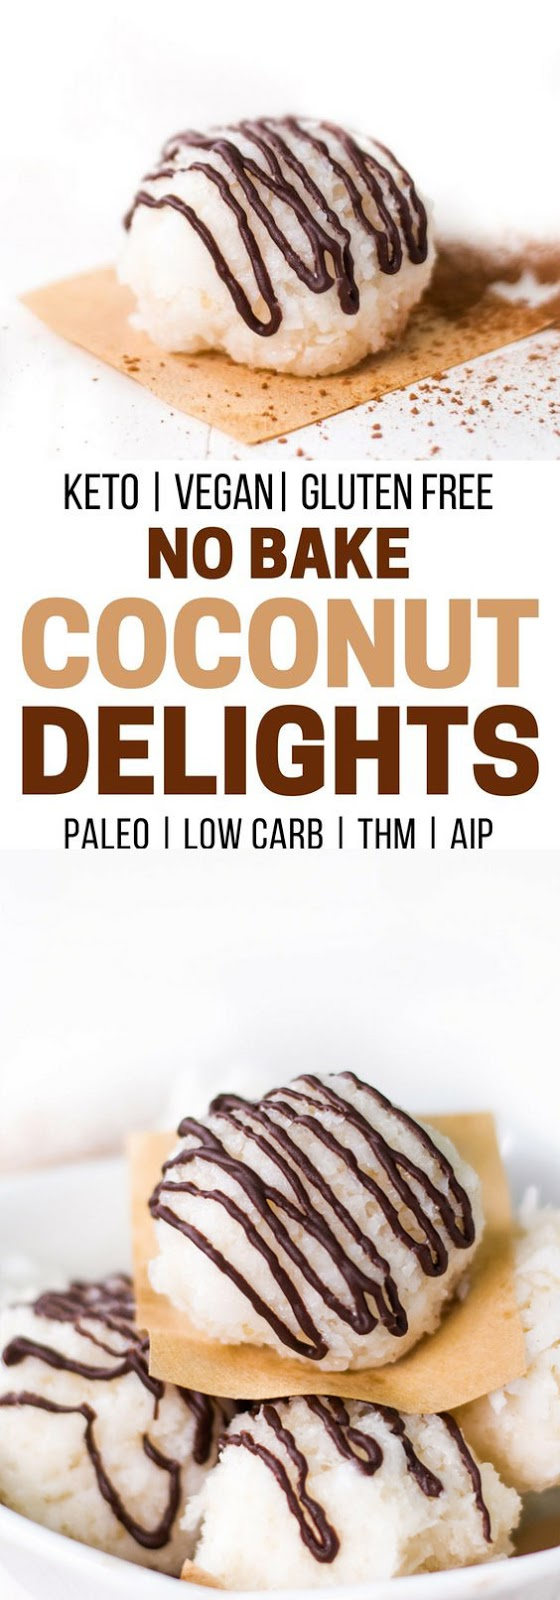 No Bake Coconut Cookies Coconut Delights